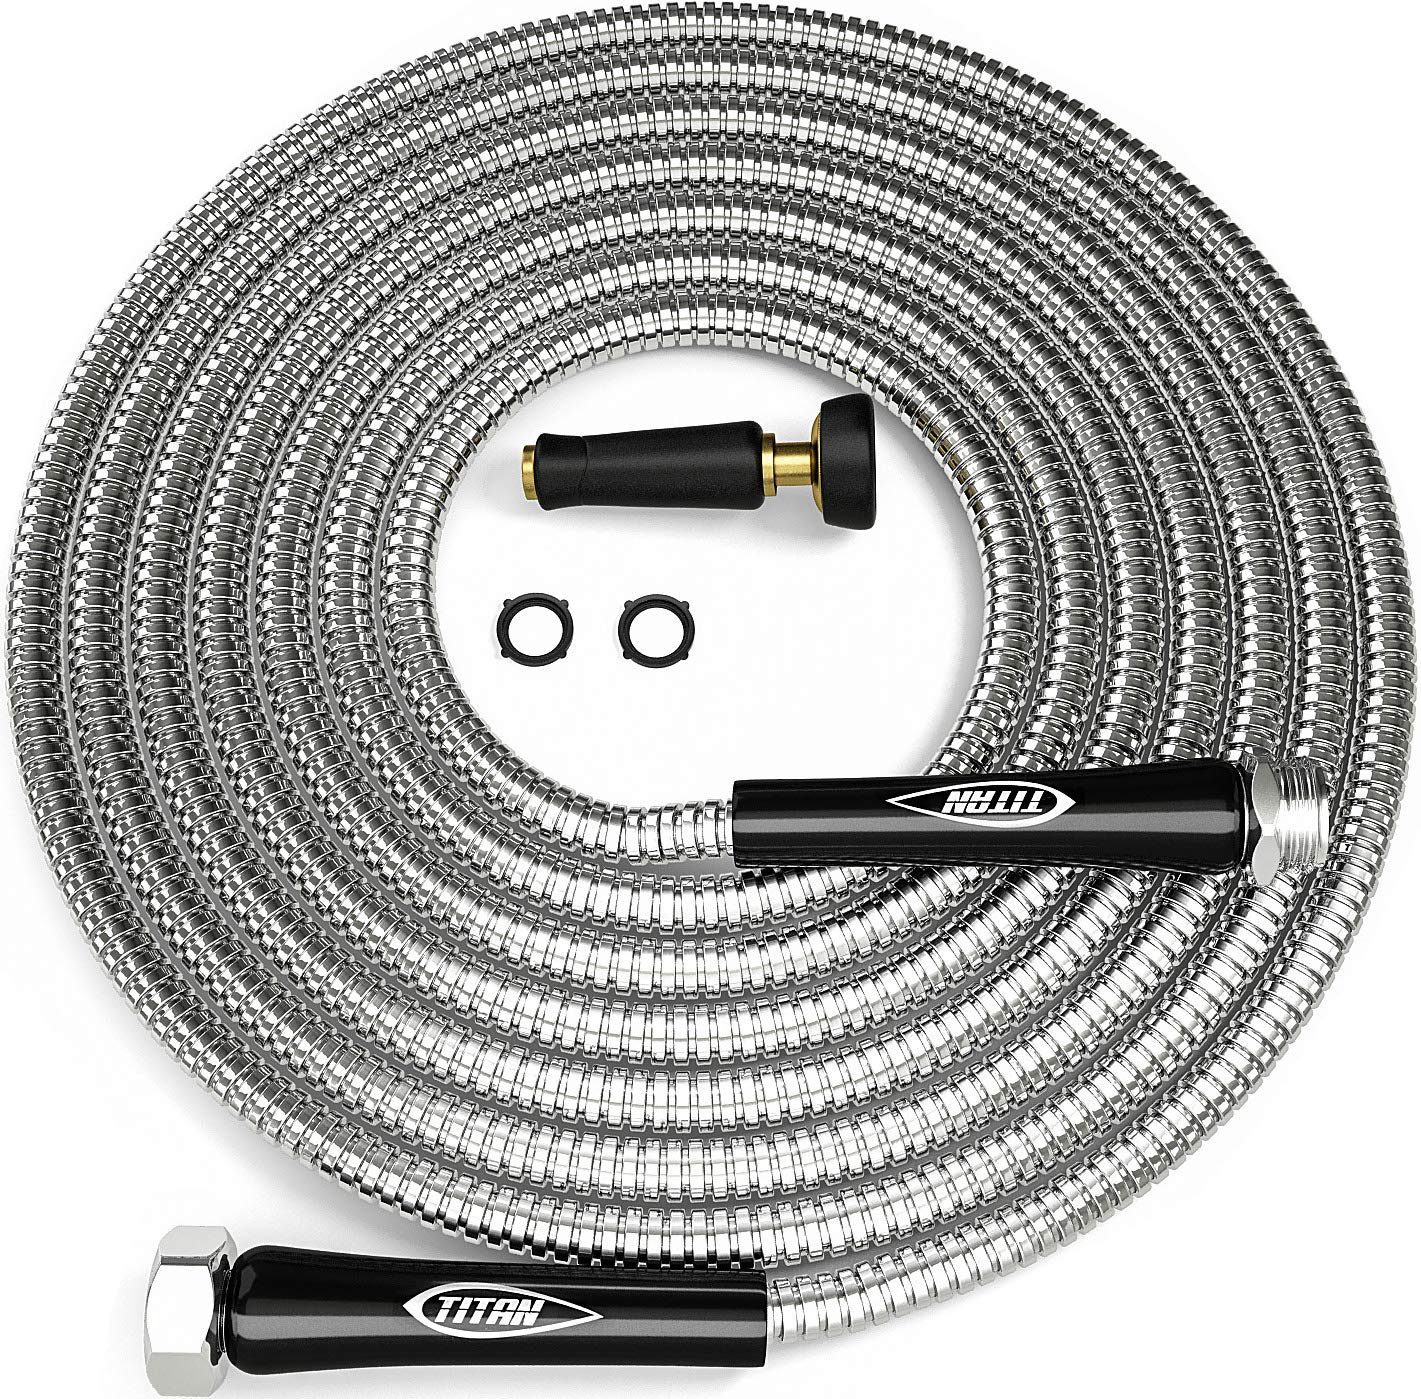 TITAN 100FT Metal Garden Hose